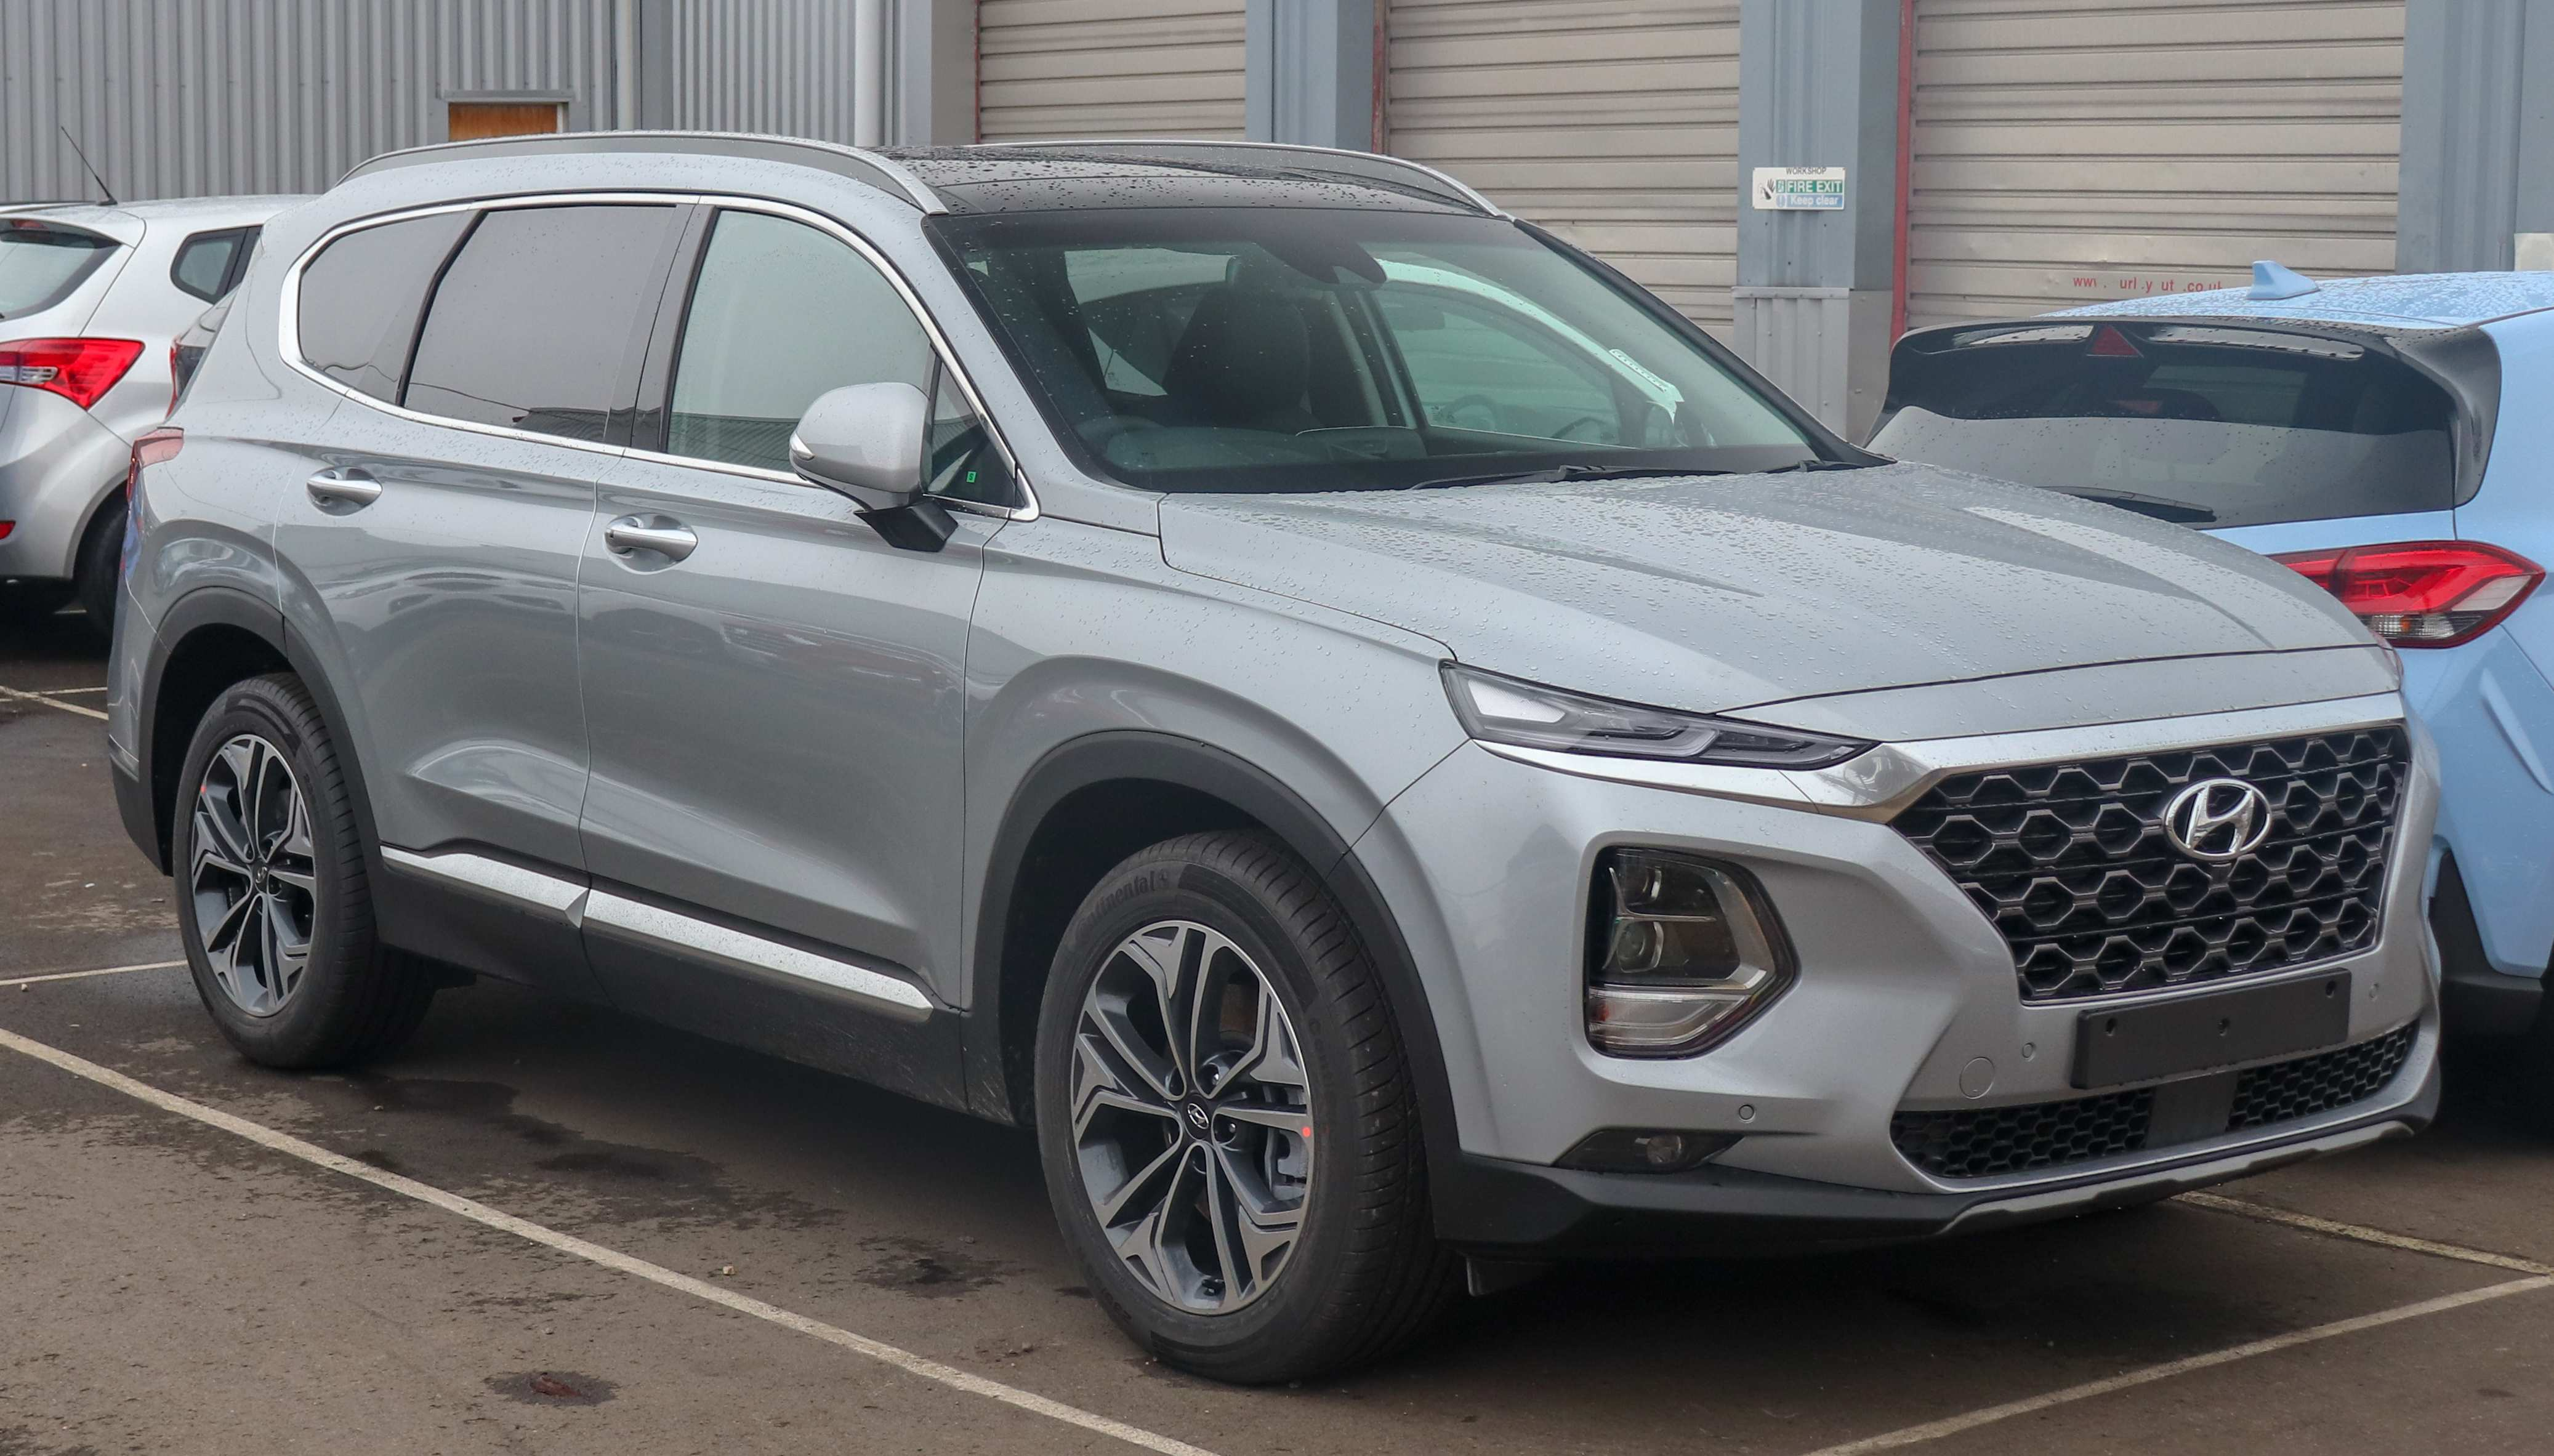 54 All New The Santa Fe Kia 2019 Rumors Rumors